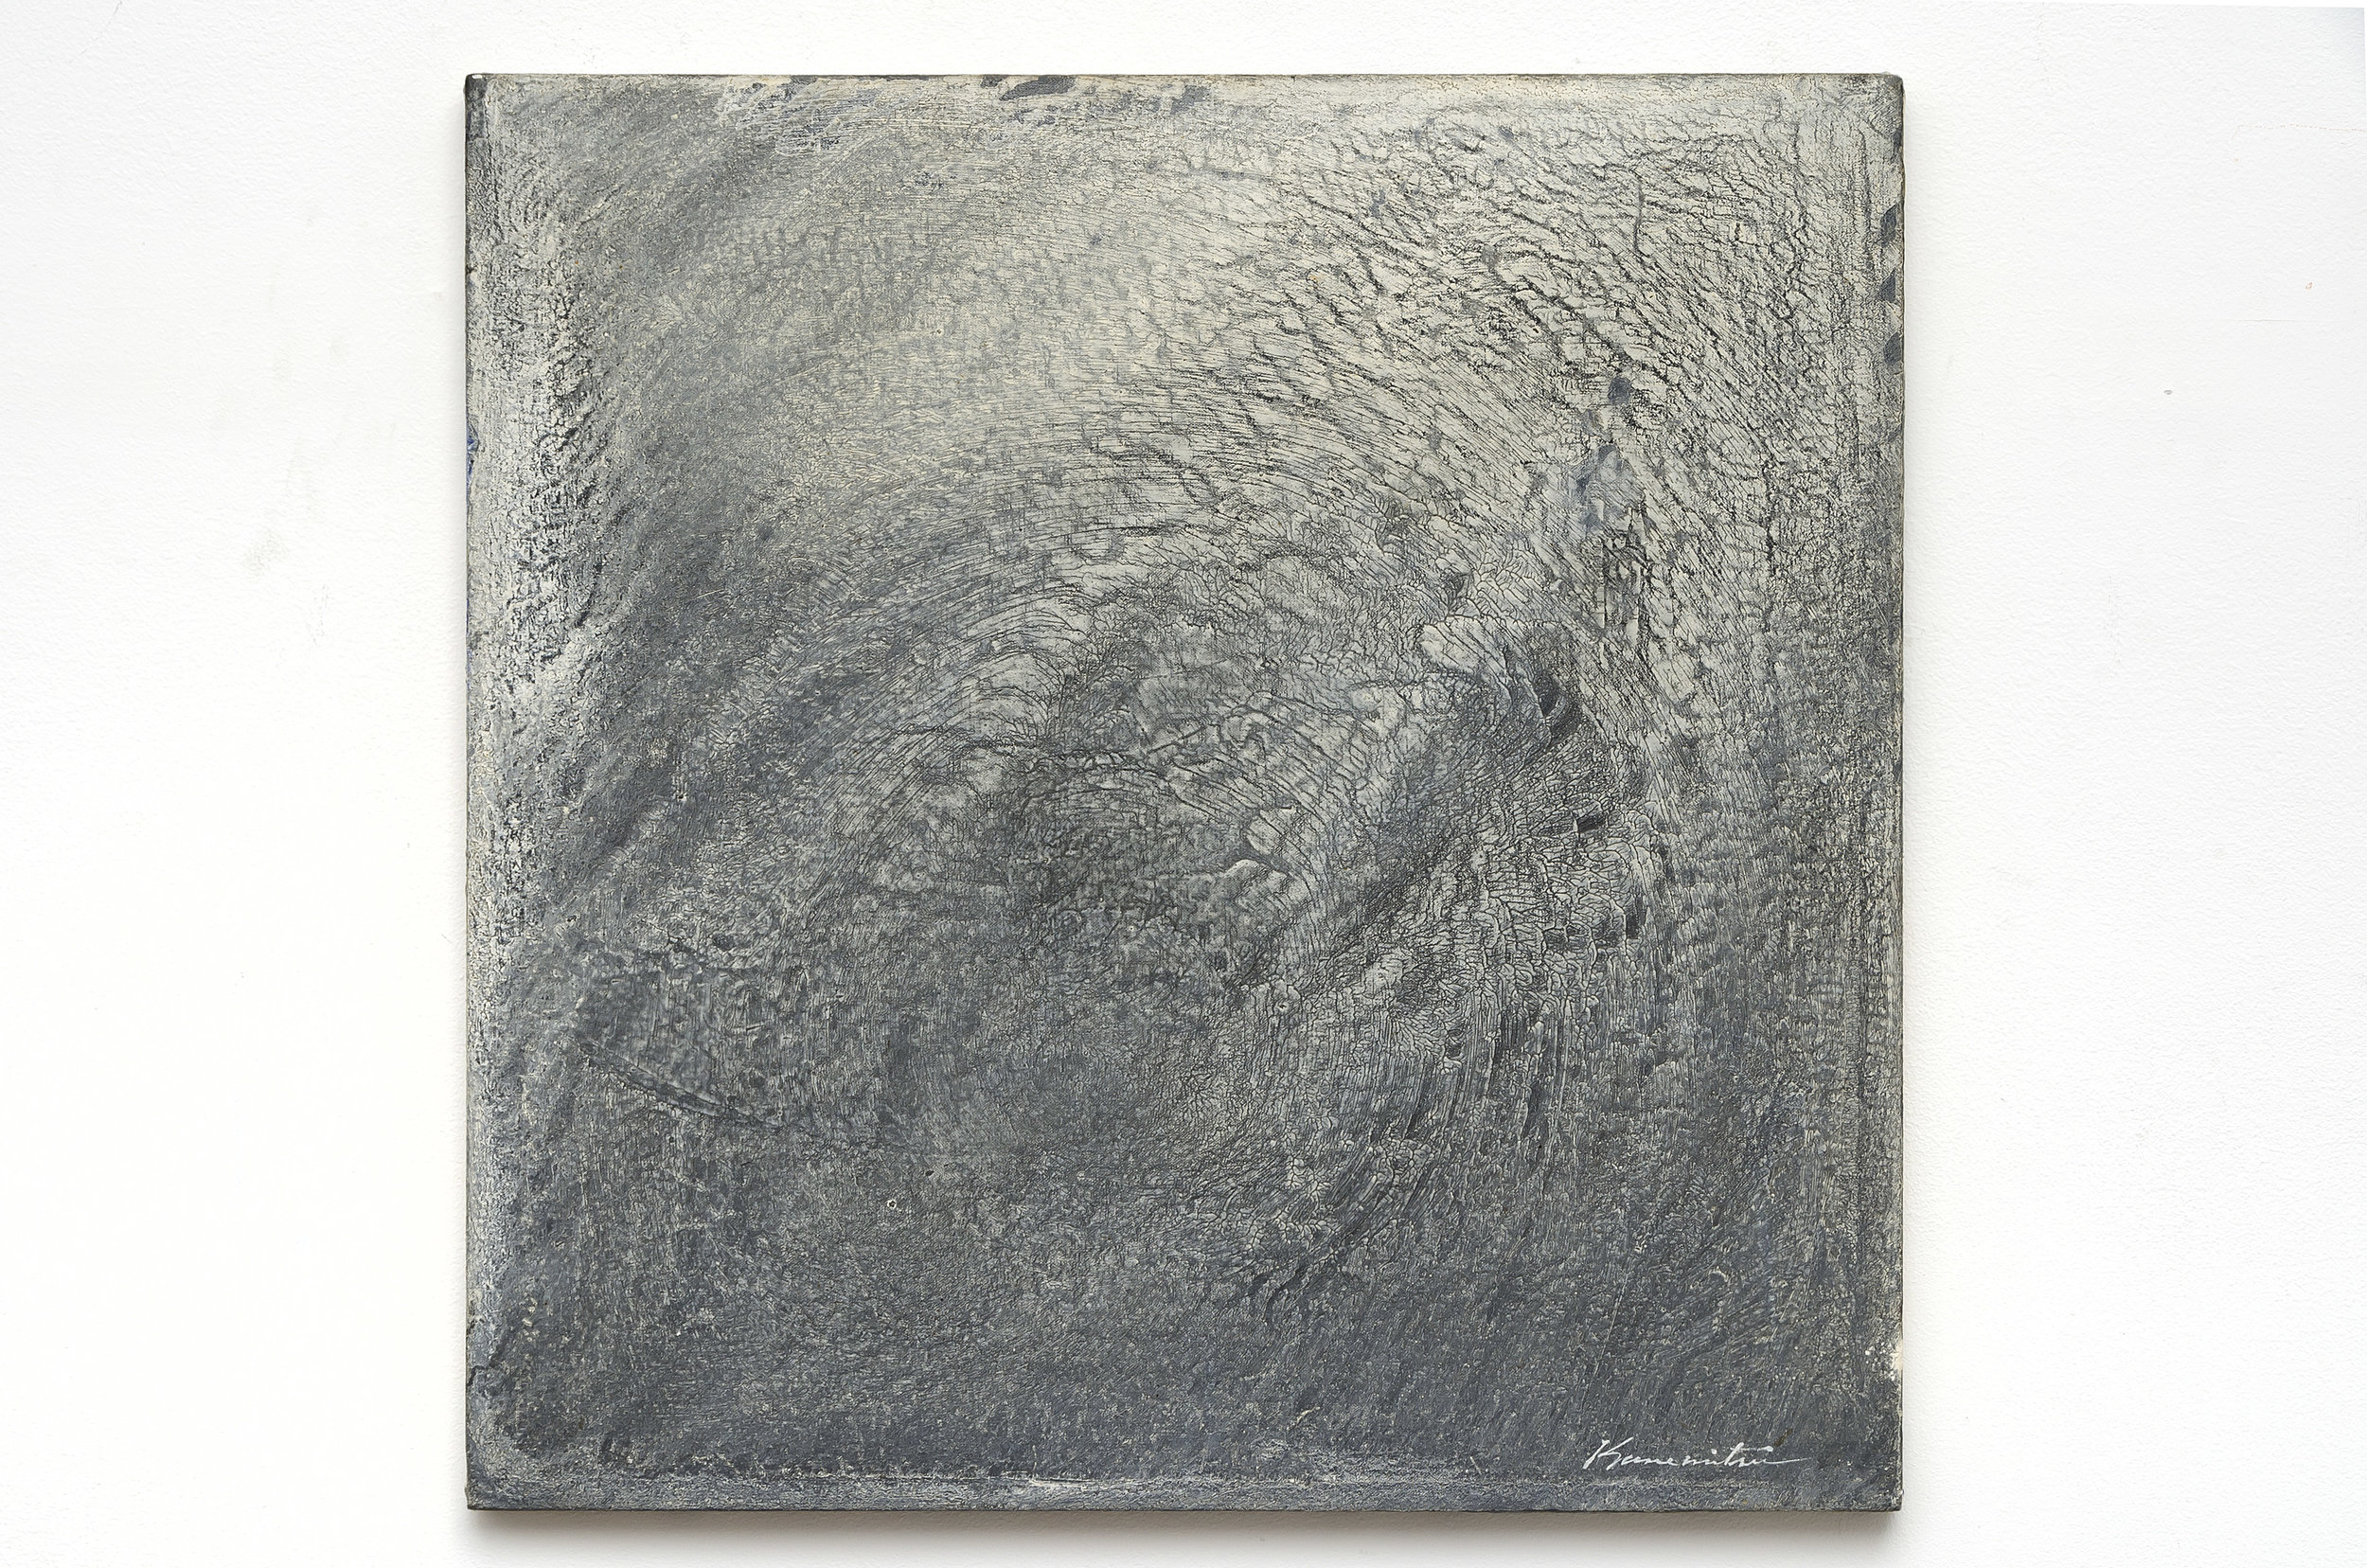 Hiroshima , 1964 acrylic on canvas 24 x 24 inches; 61 x 61 centimeters